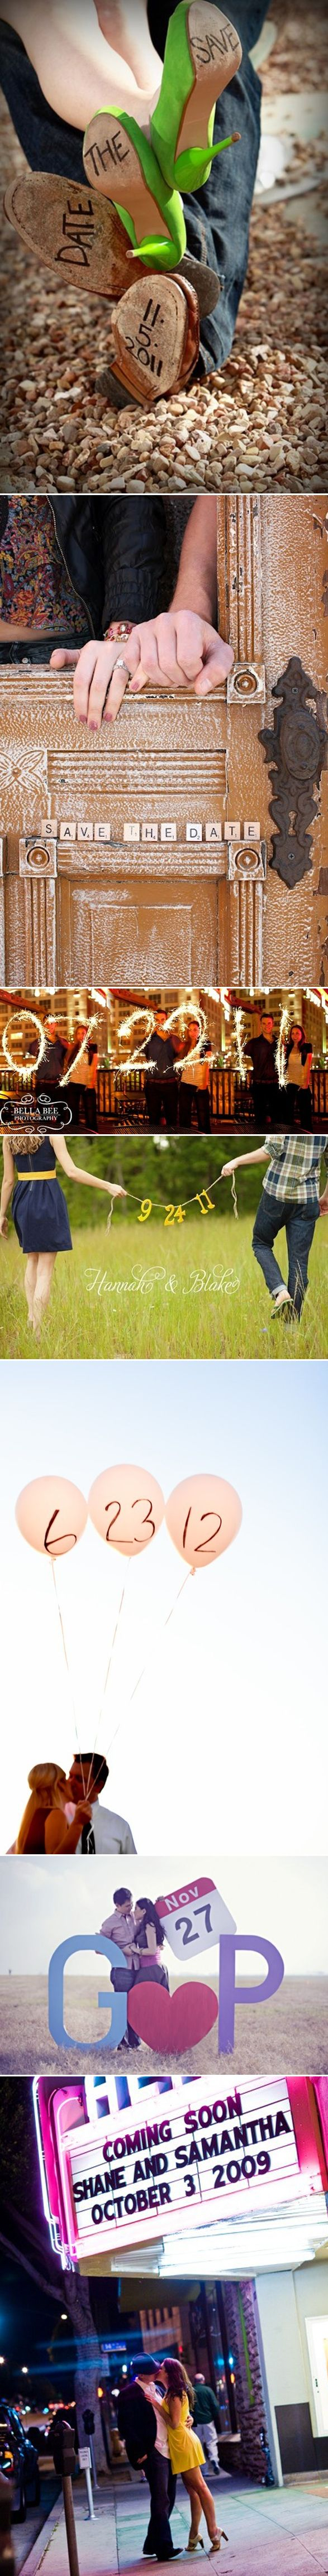 Save the Date >> Some really wonderful ideas!: Save The Date, Photos Ideas, Movie Theater, Cute Ideas, Theatre, Shoes Ideas, Date Ideas, Super Cute, Balloon